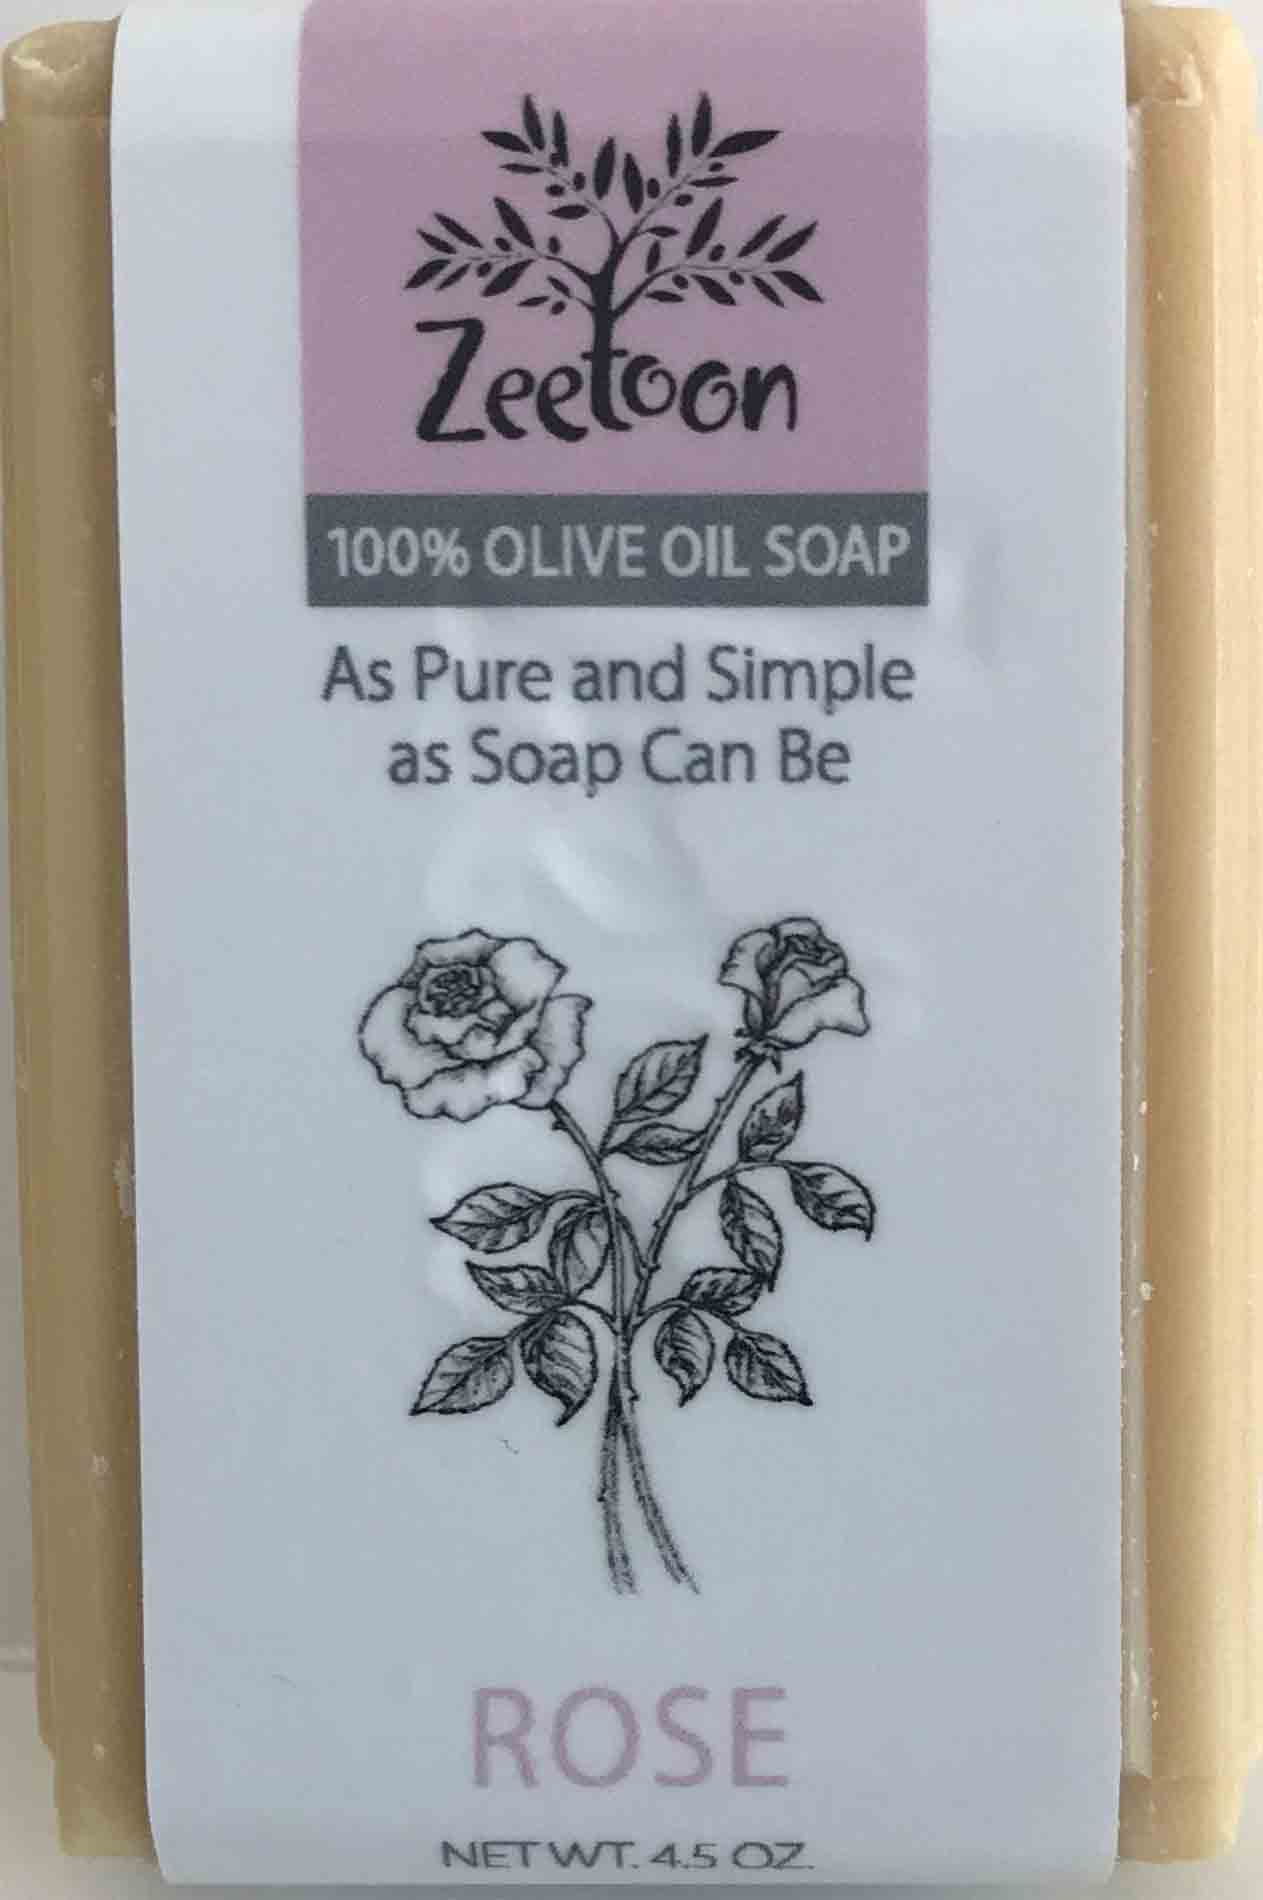 Choose from ten different varieties of Zeetoon 100% olive oil soap